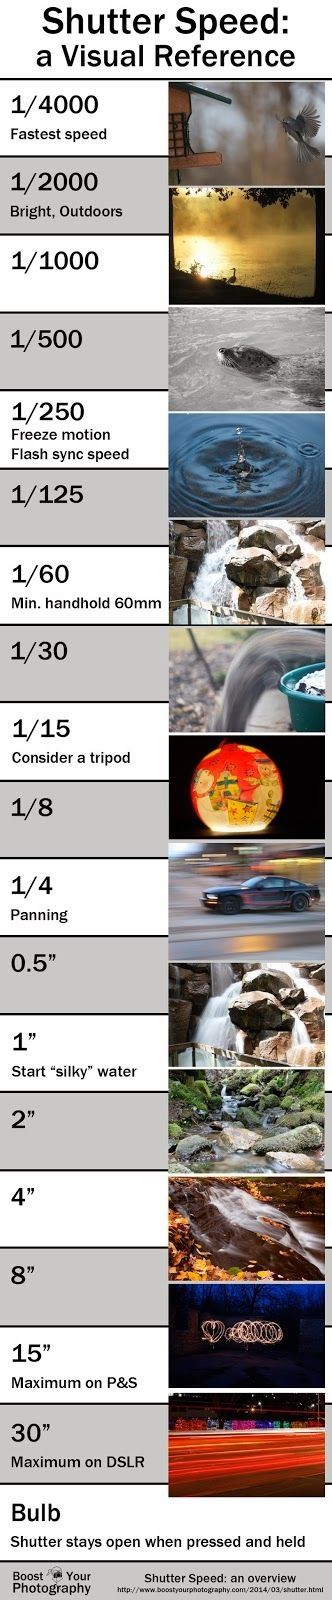 Shutter Speed: an overview | Boost Your Photography by bertha